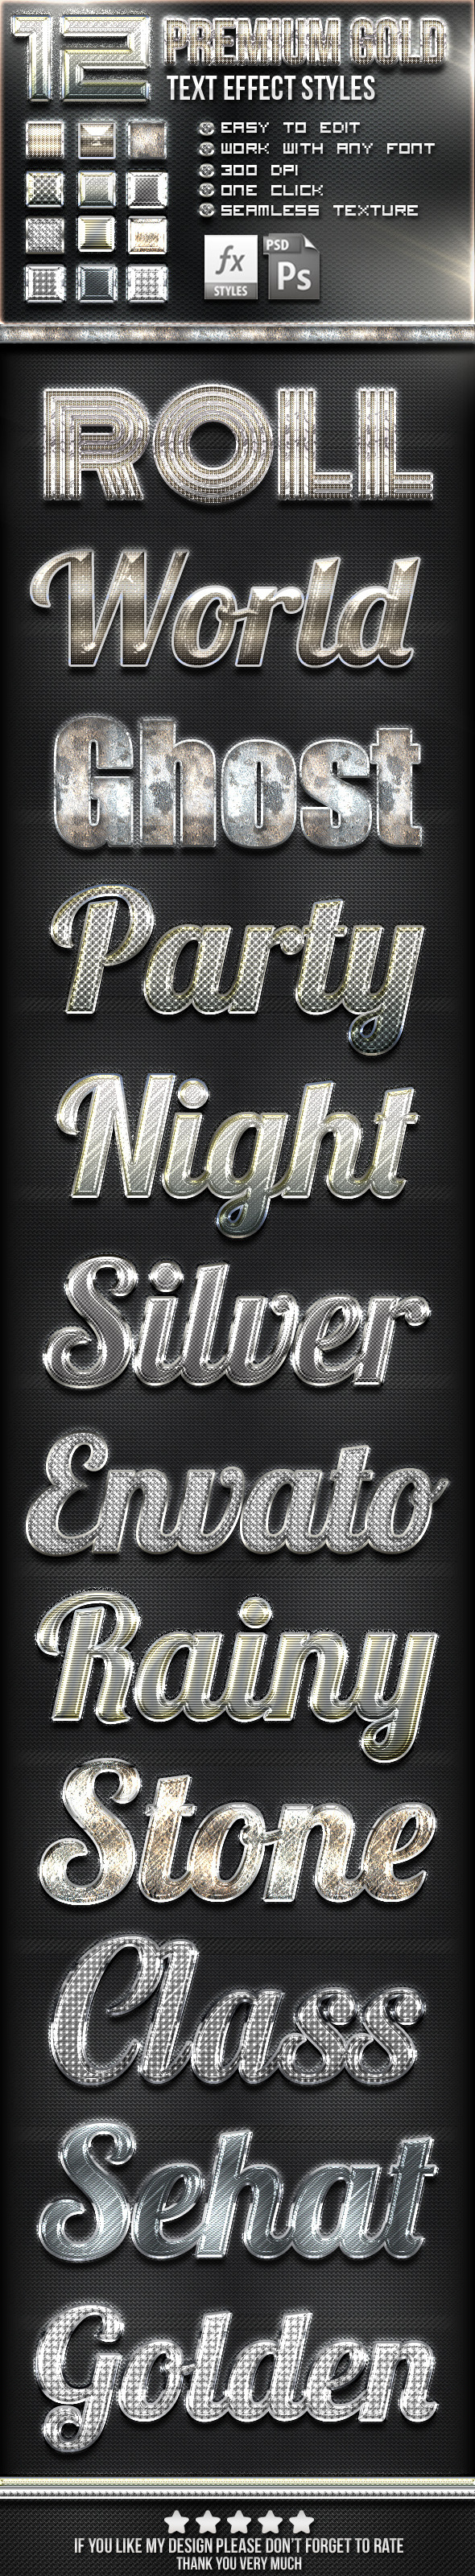 12 Silver Photoshop Text Effect Styles - Text Effects Styles